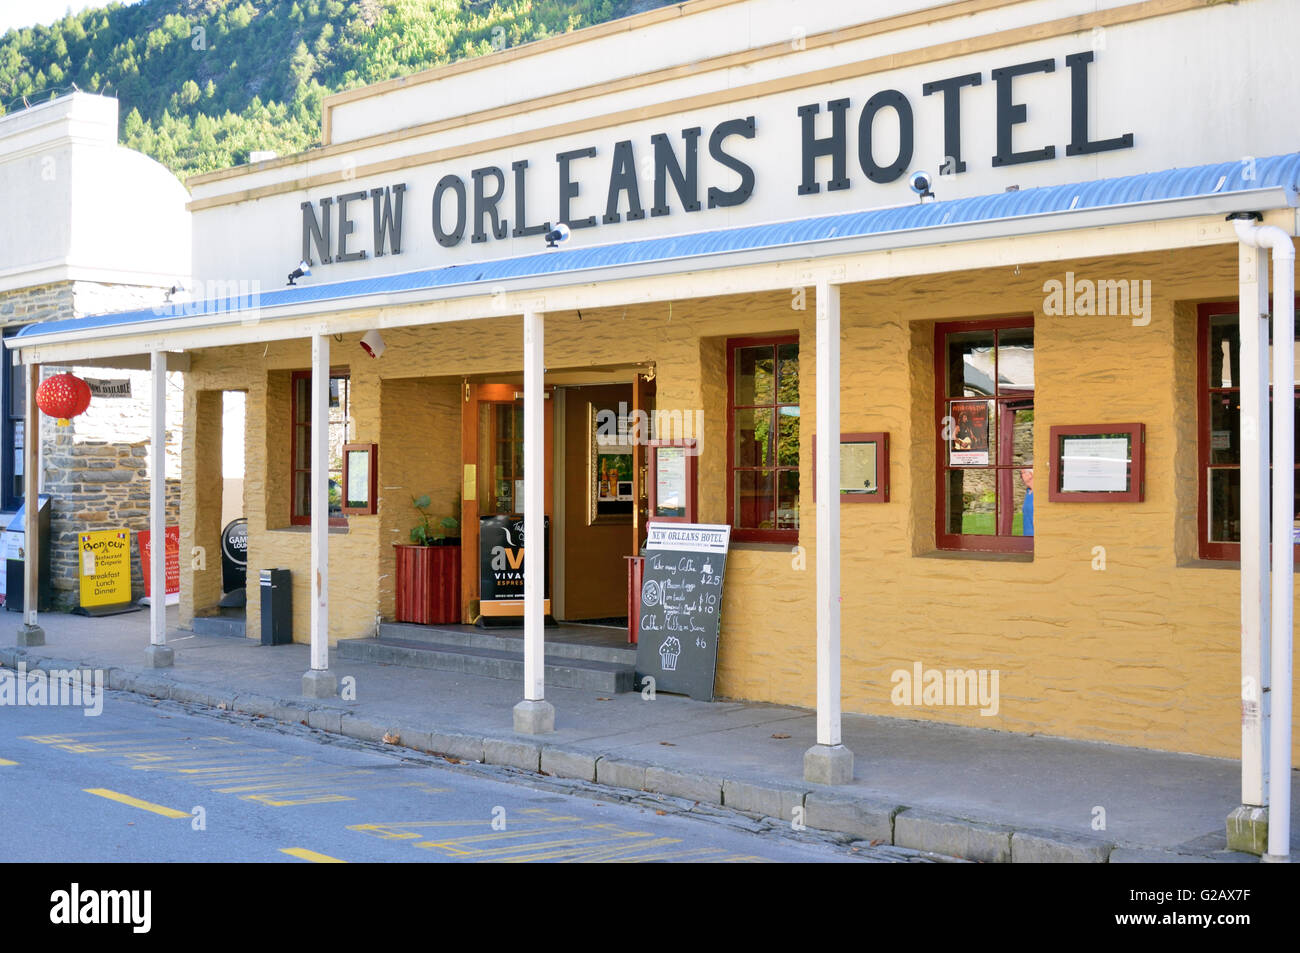 New Orleans Hotel, Arrowtown Stock Photo